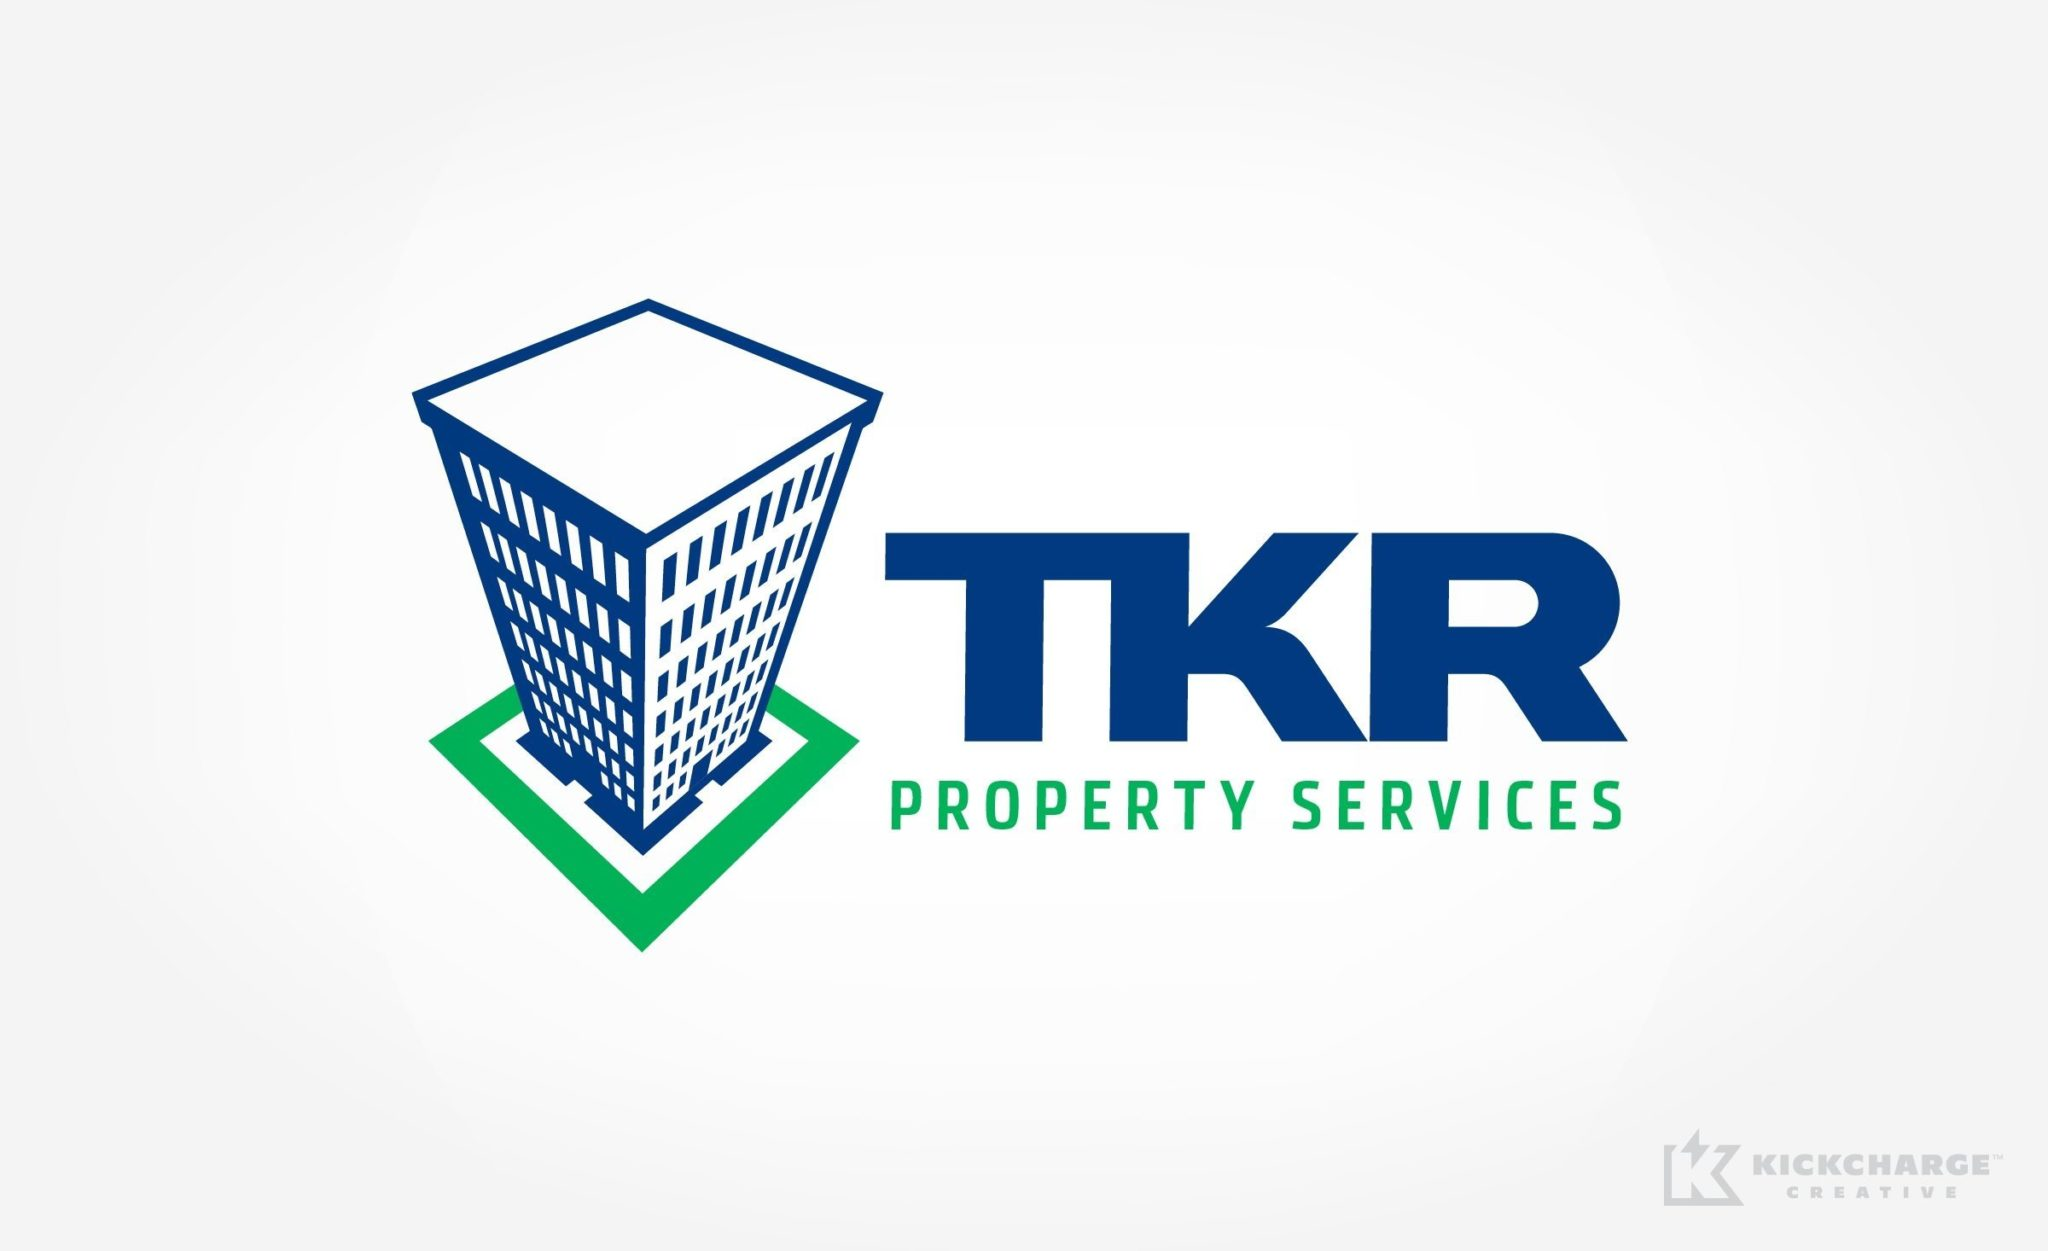 Logo design and corporate identity development for a property management firm in Brooklyn, NY.